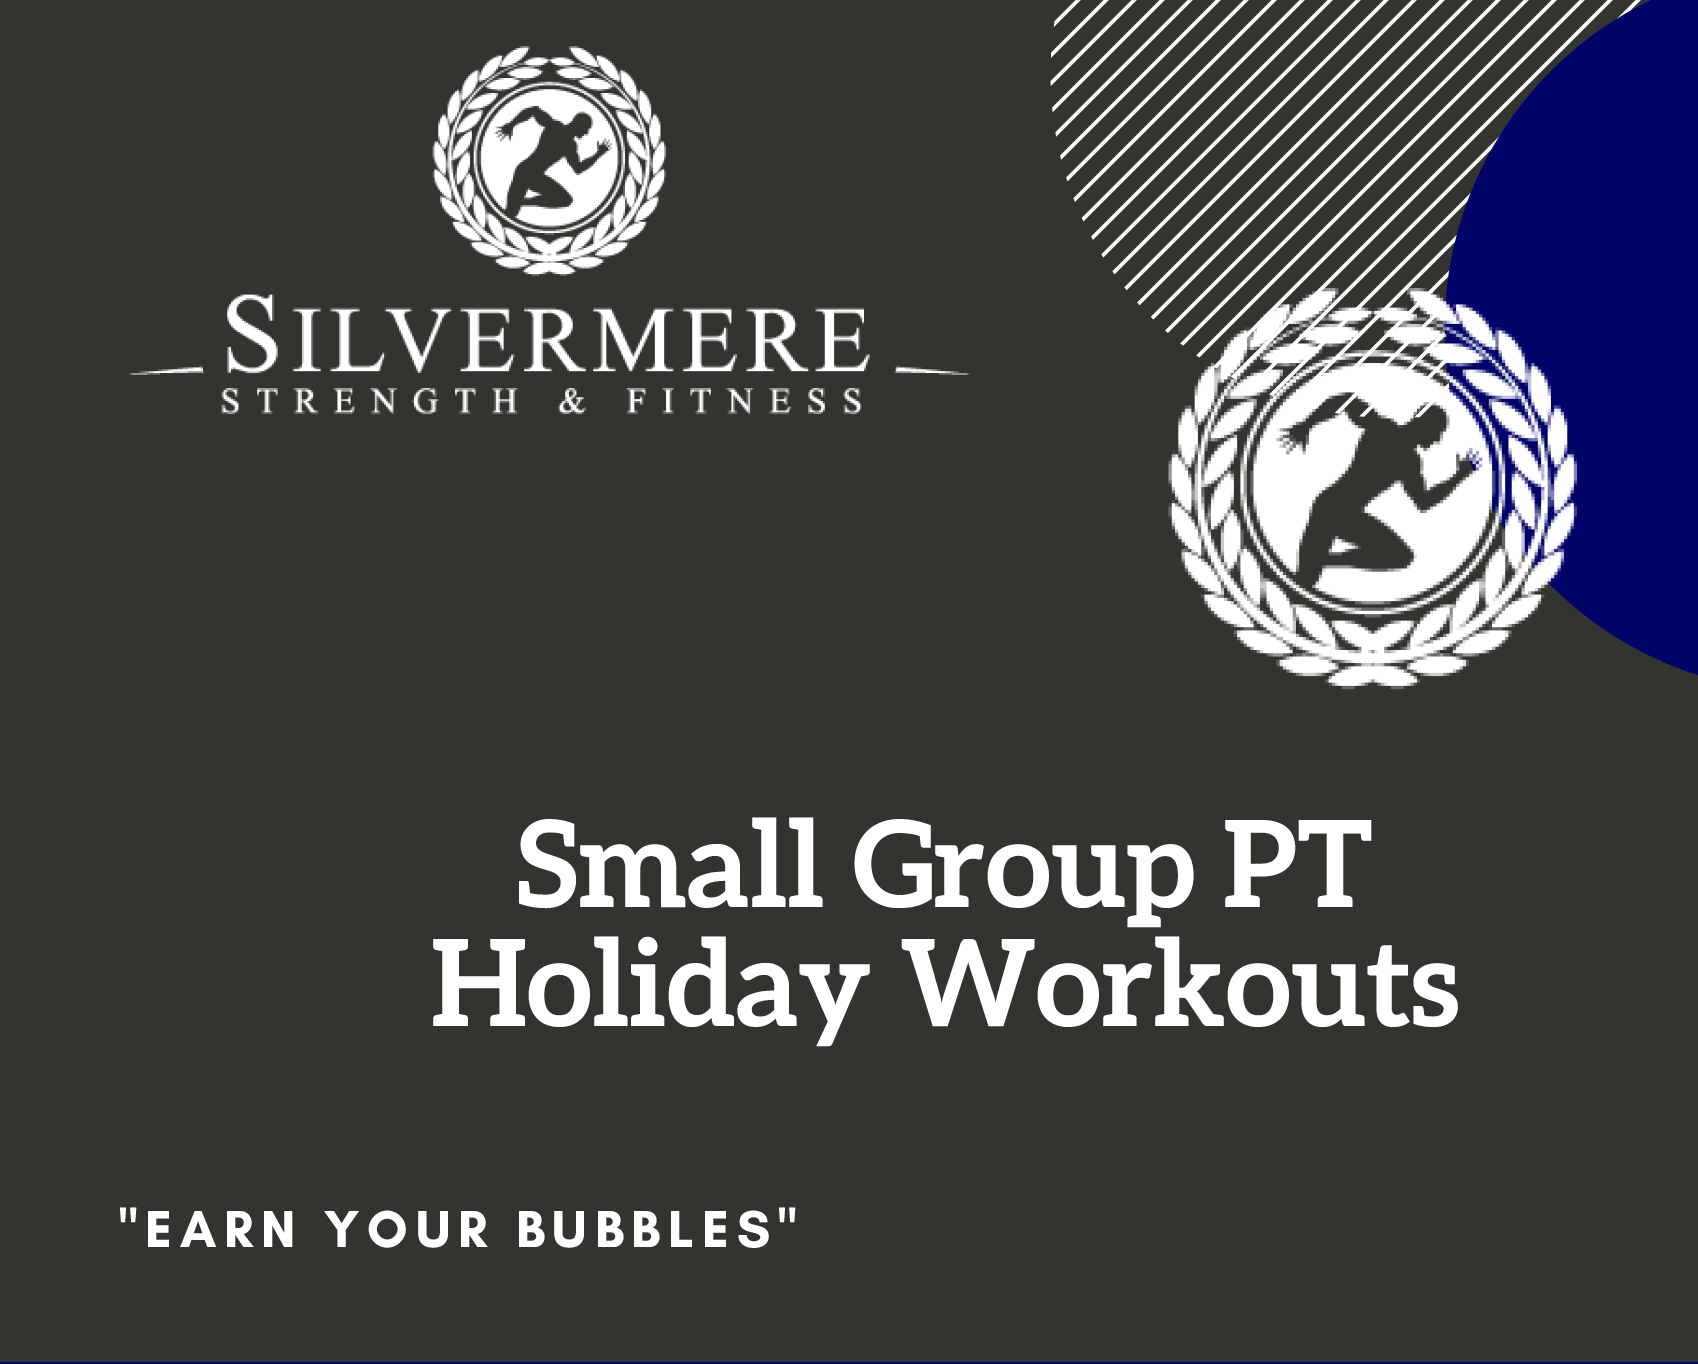 Hit below to download holiday workouts....